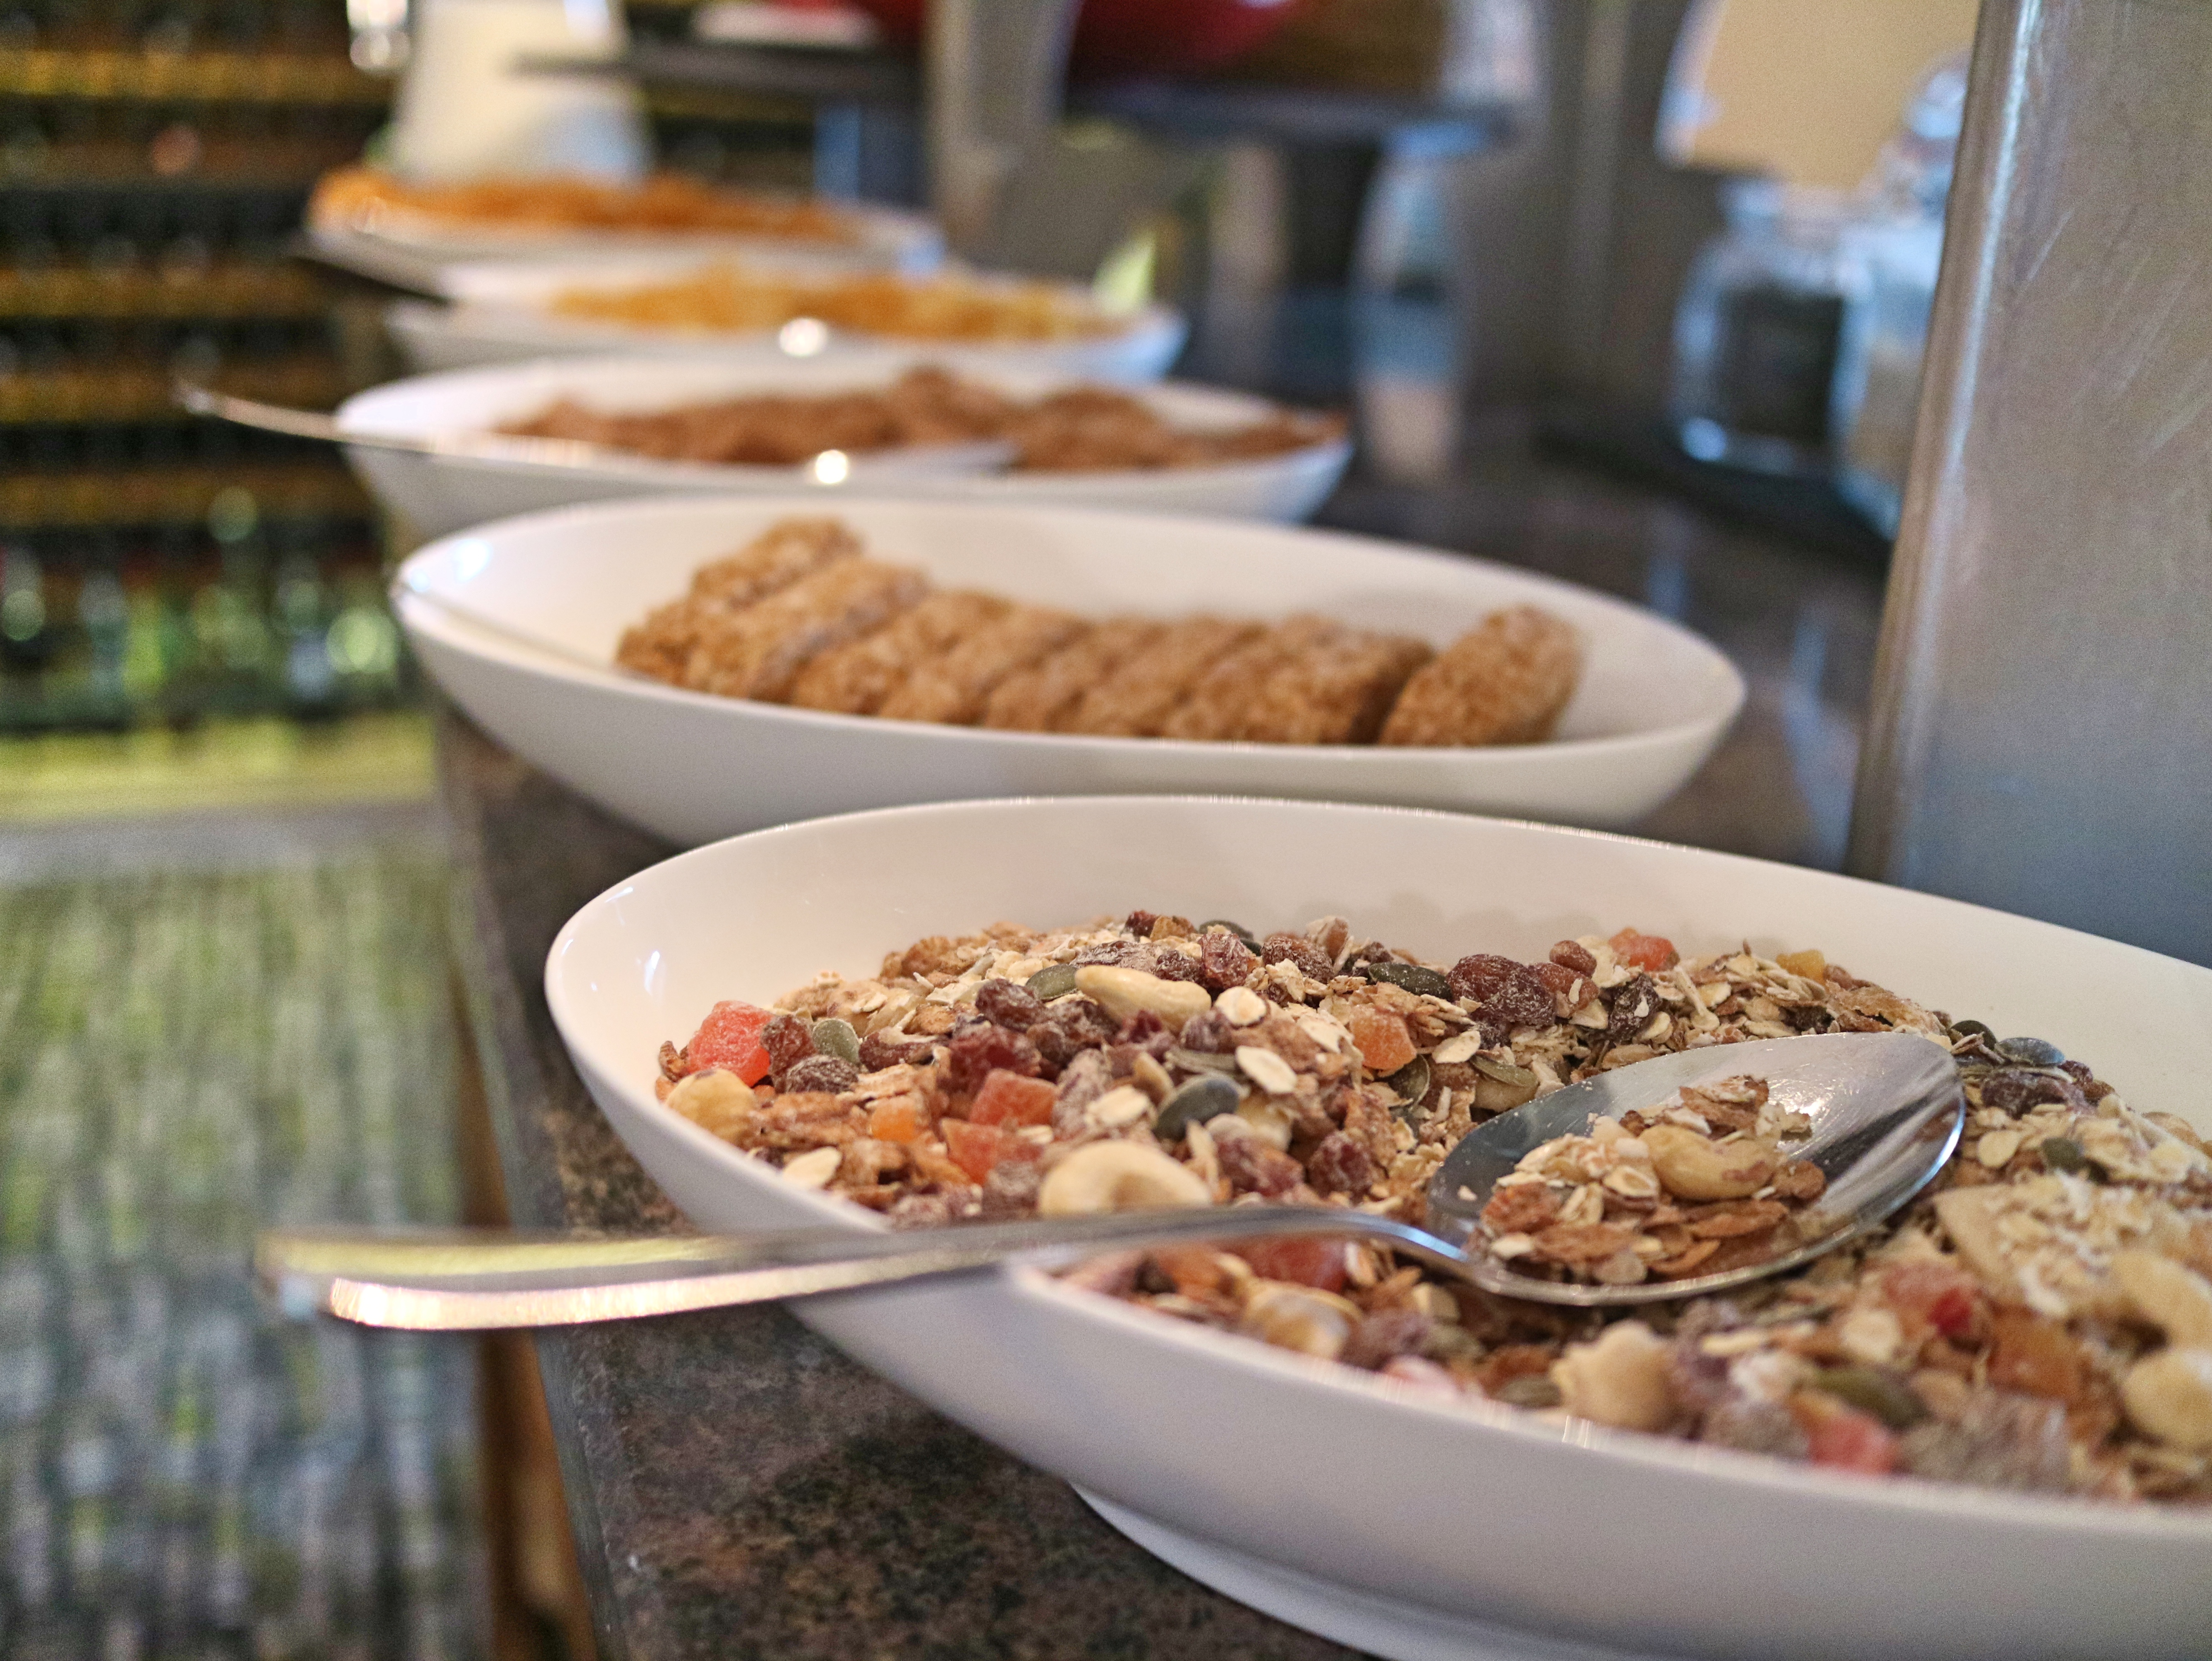 Continental breakfast at Lords of Manor, The Cotswolds